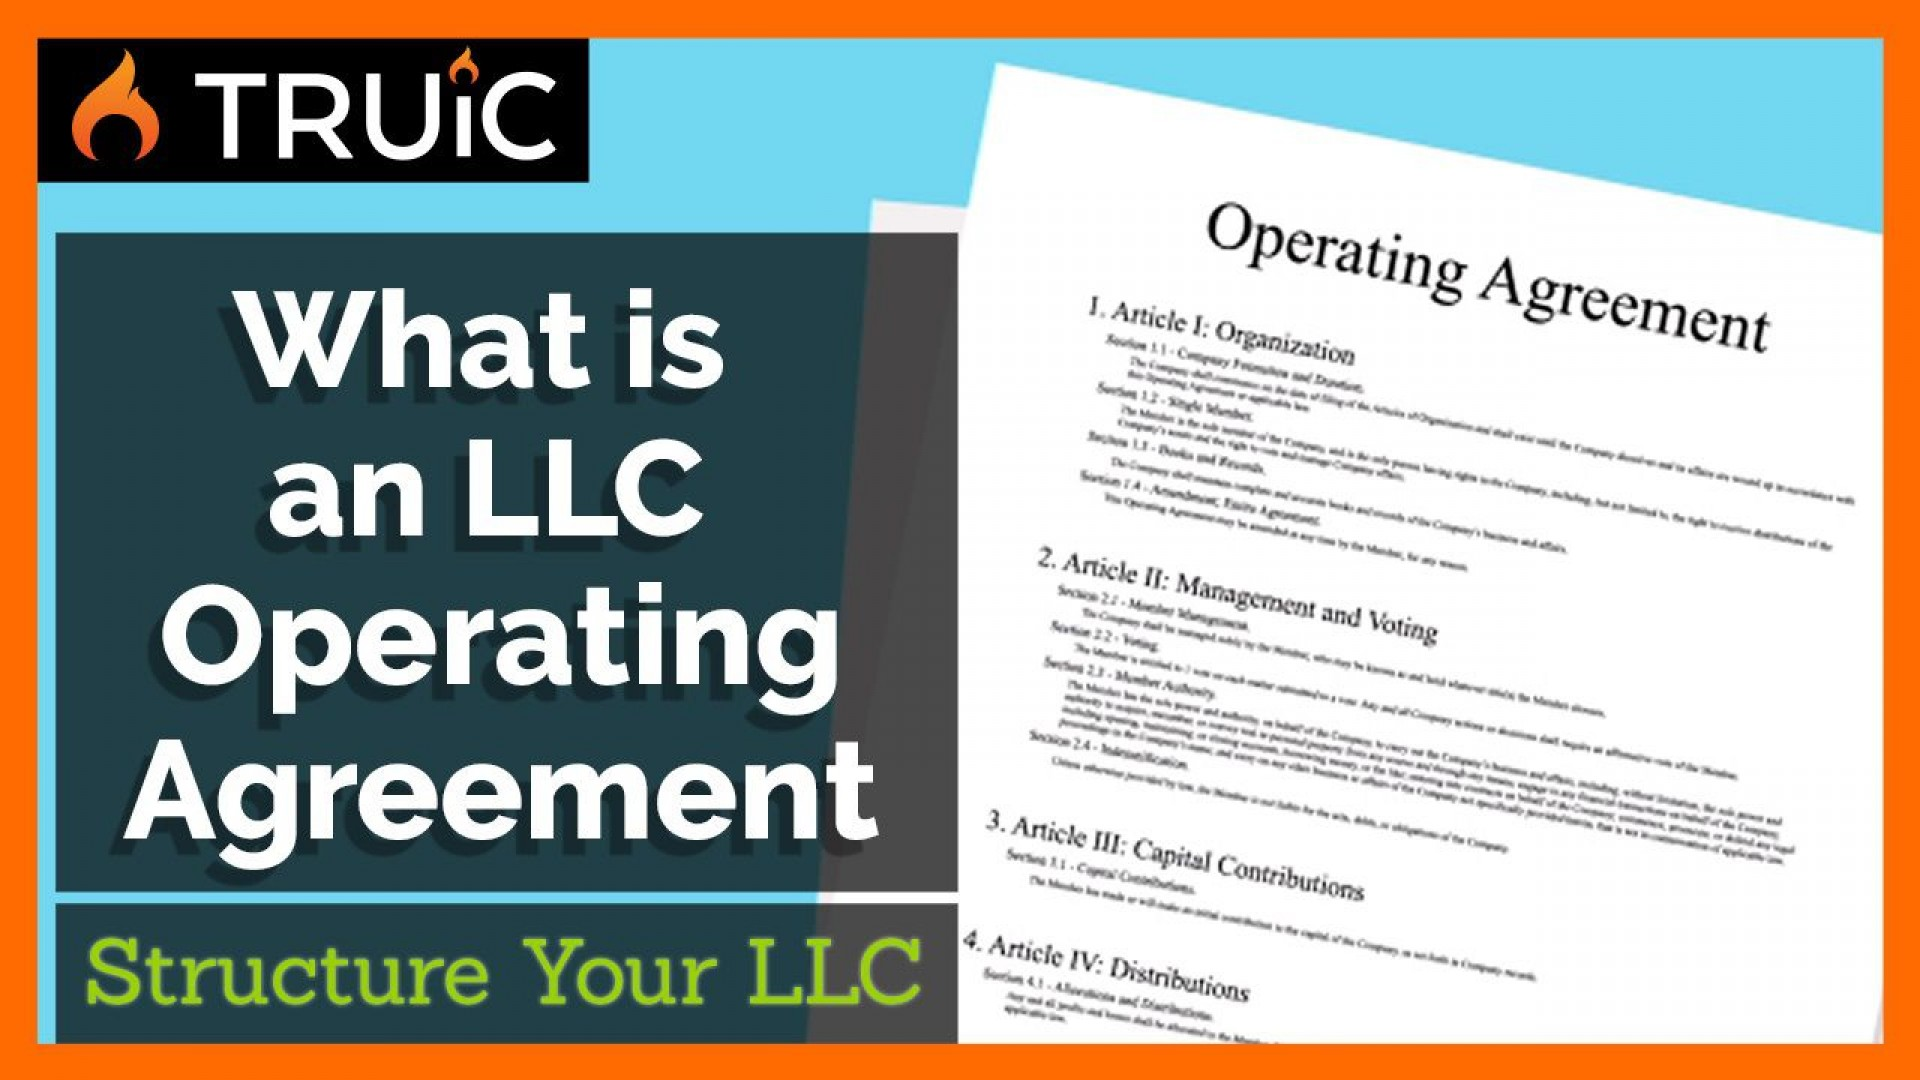 004 Phenomenal Operating Agreement Template For Llc Highest Clarity  Form Florida Texa1920